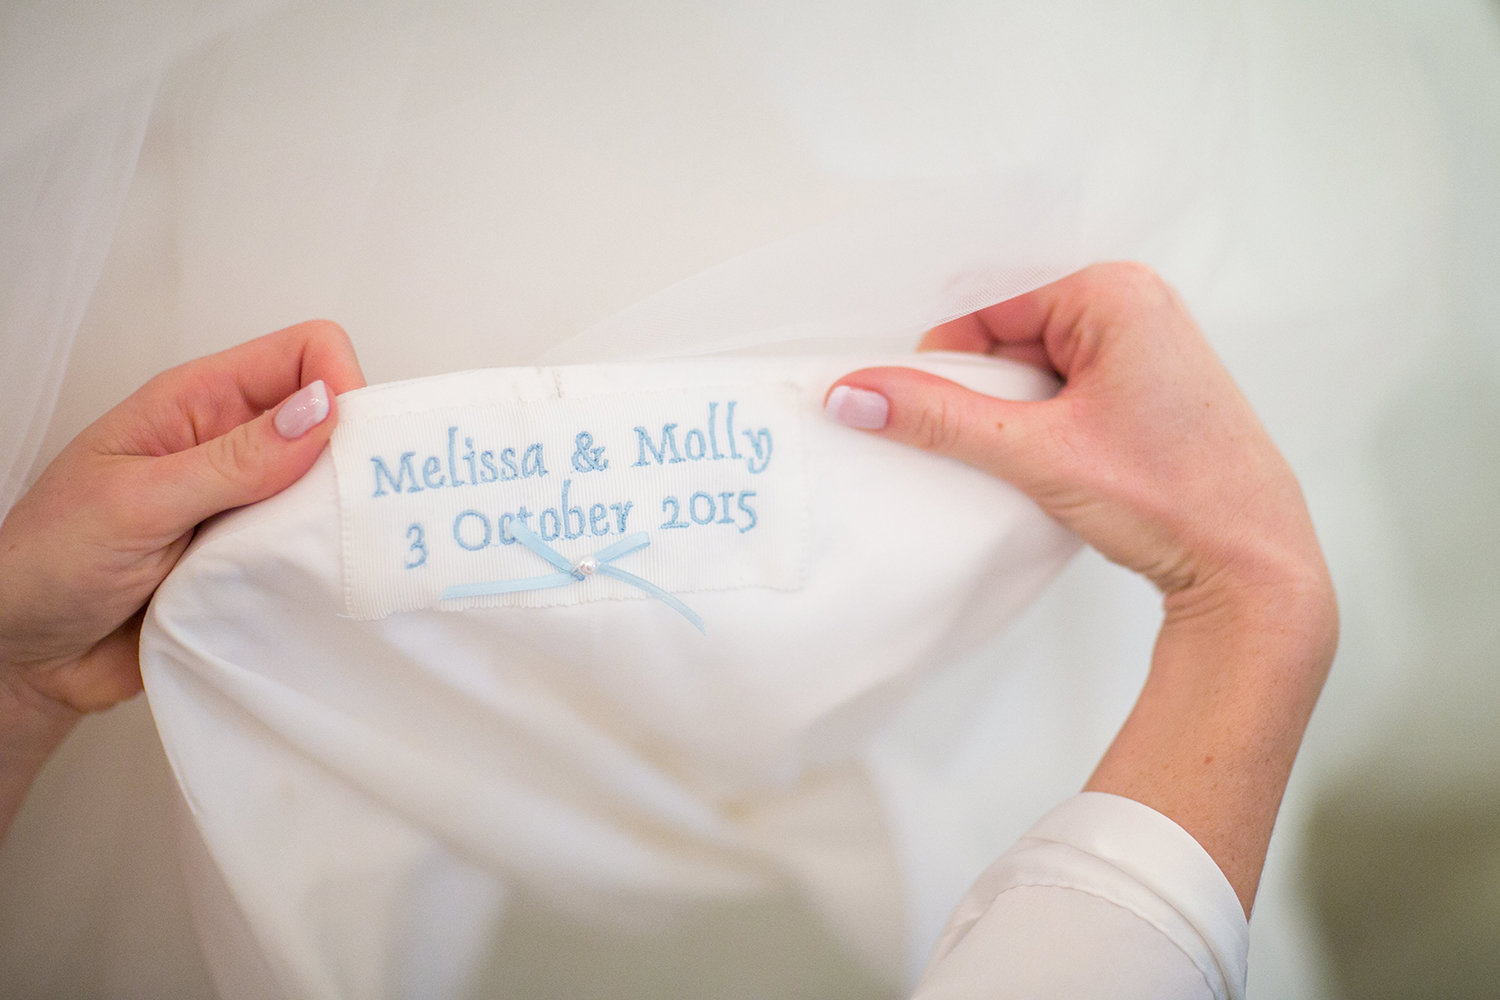 Custom embroidery on a bride's wedding dress